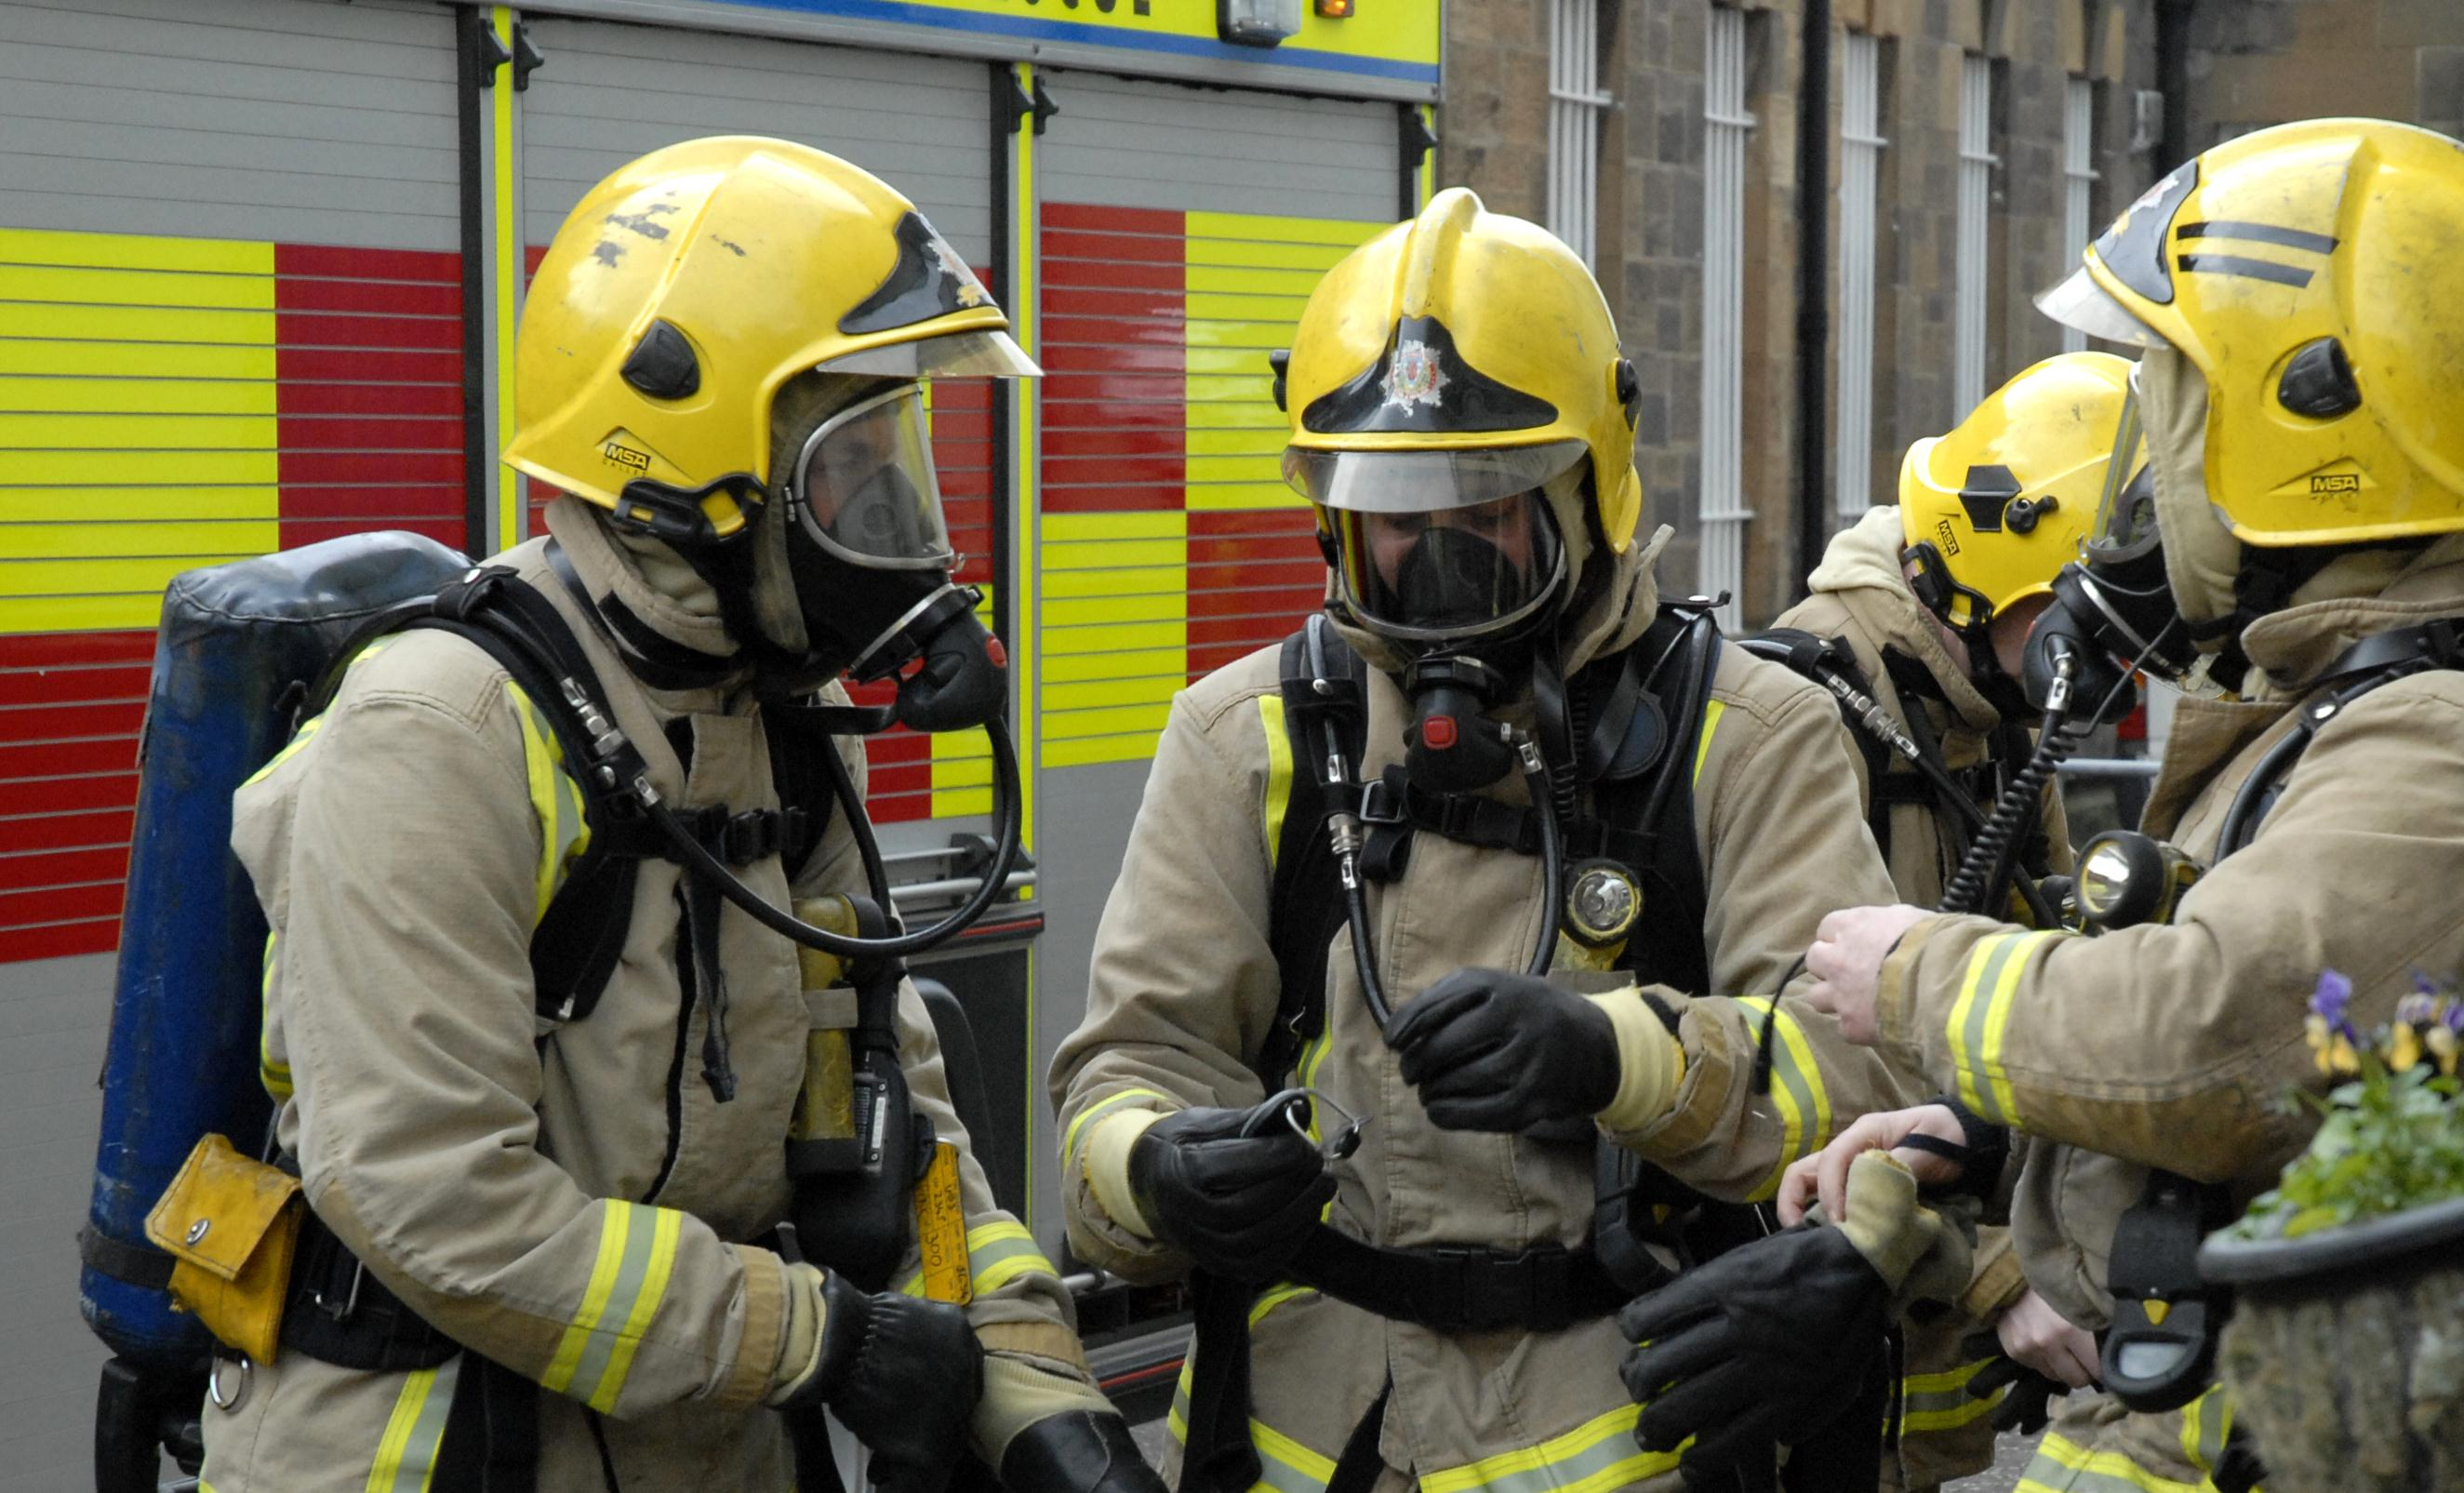 Crews at scene of house fire in Cumbernauld, North Lanarkshire